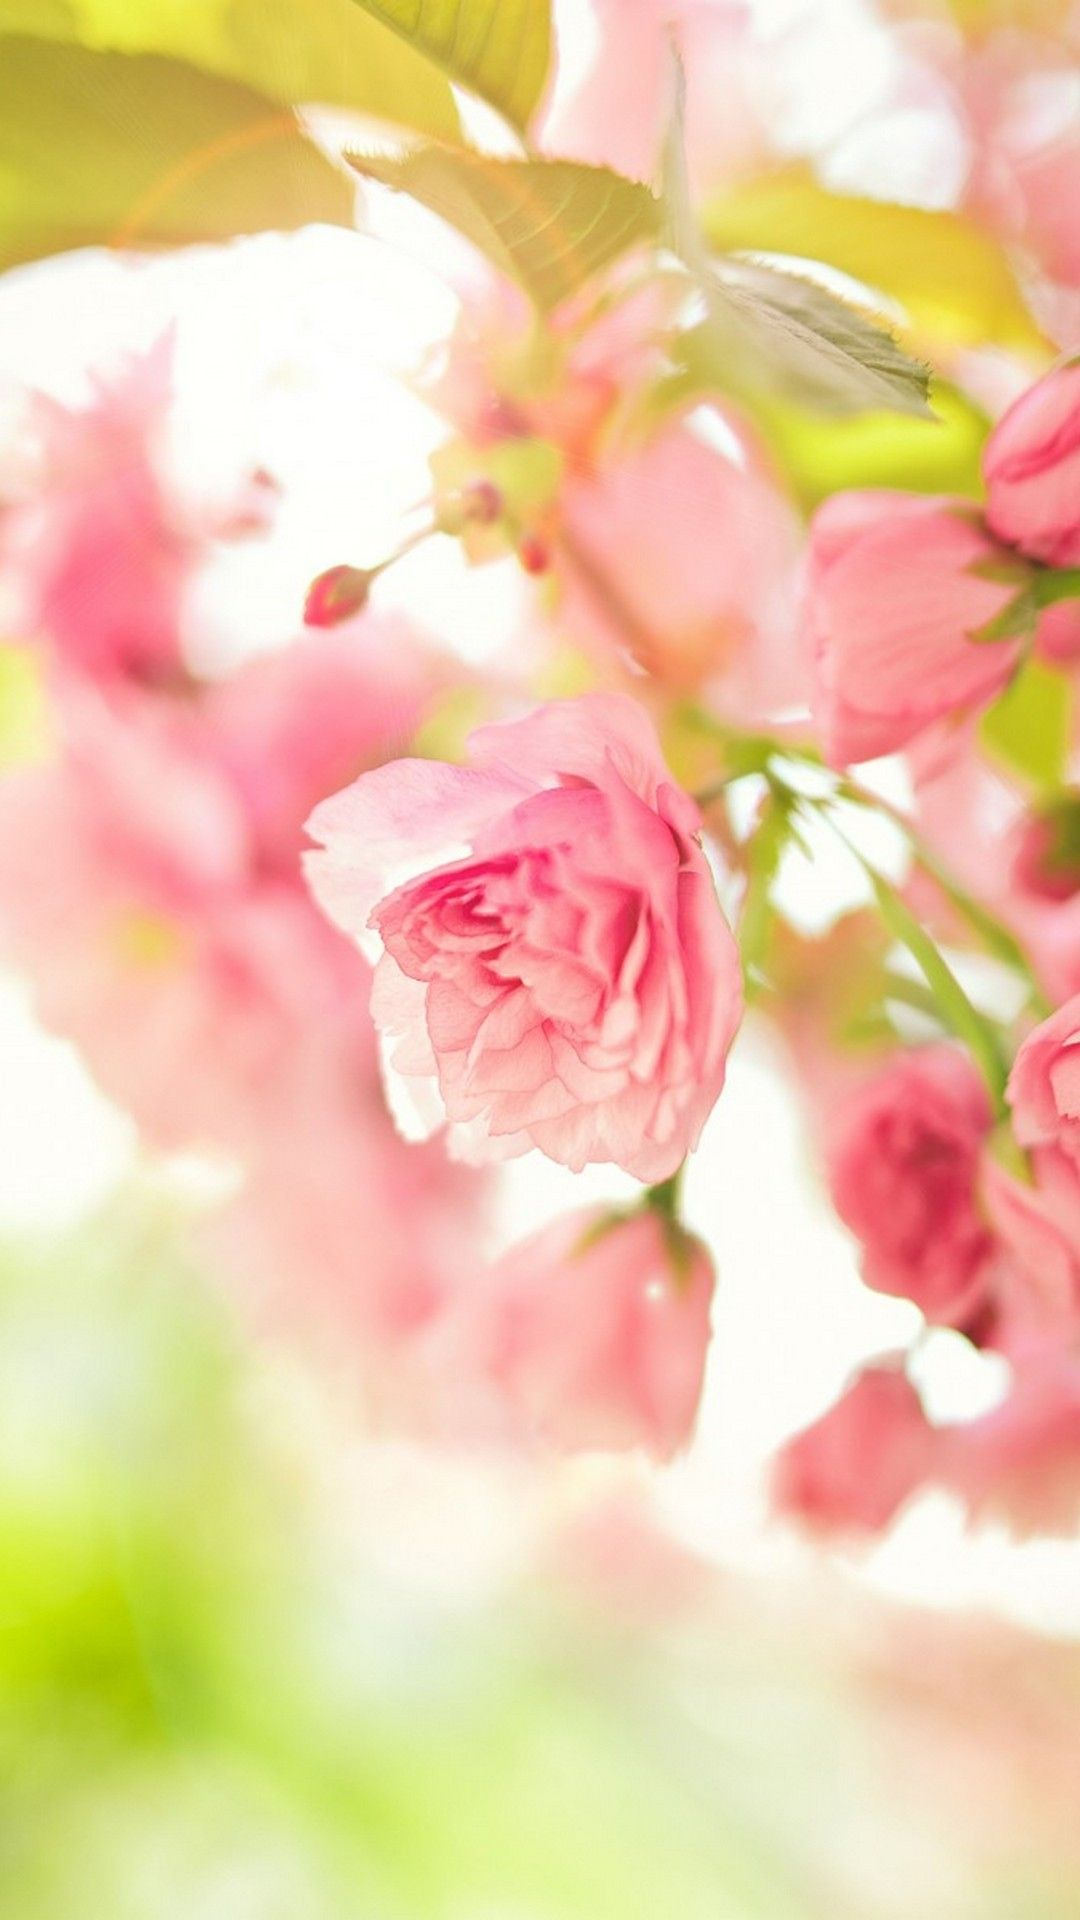 Spring Season Mobile Wallpaper HD Hd wallpapers for